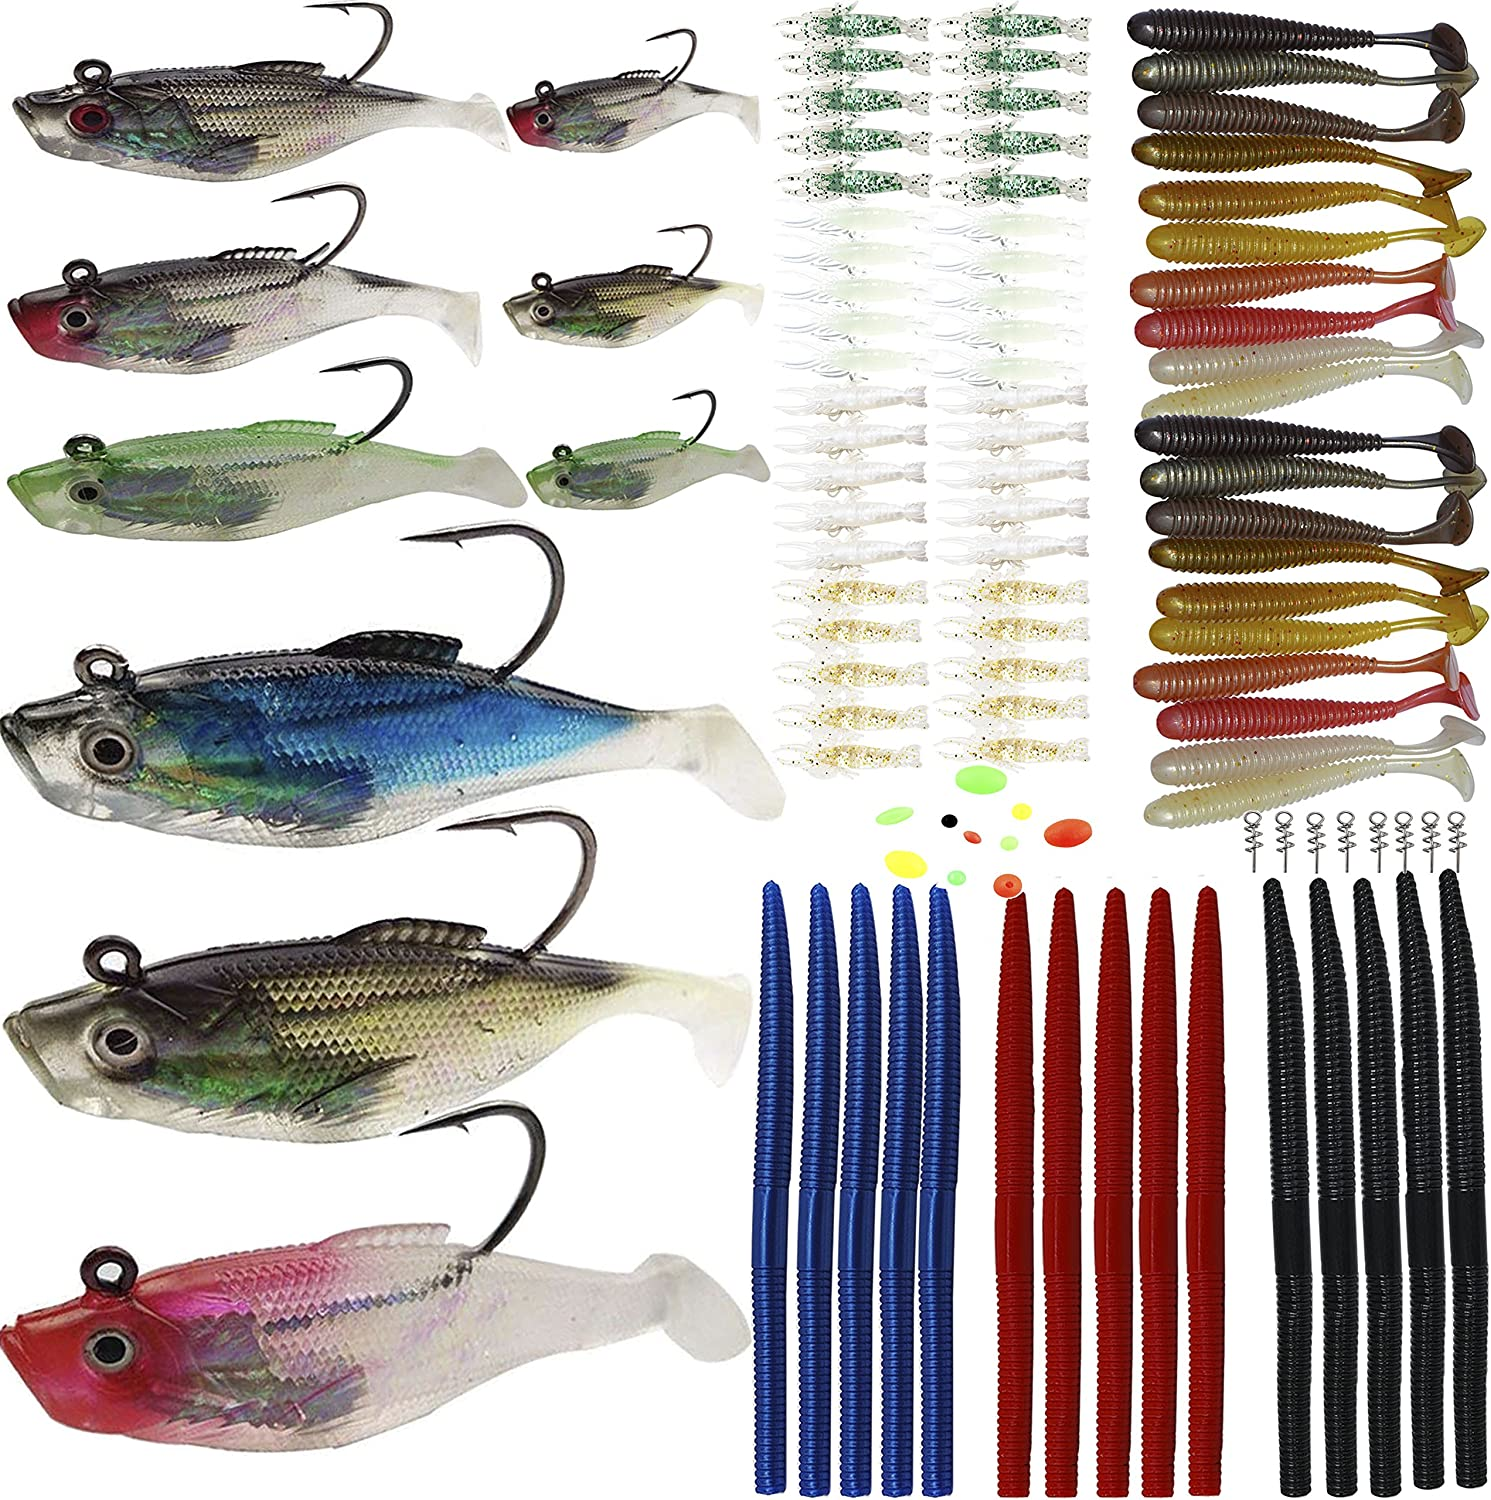 Fishing Soft Bait Lure Silicone Bass Bait Swimbait Accessories HS